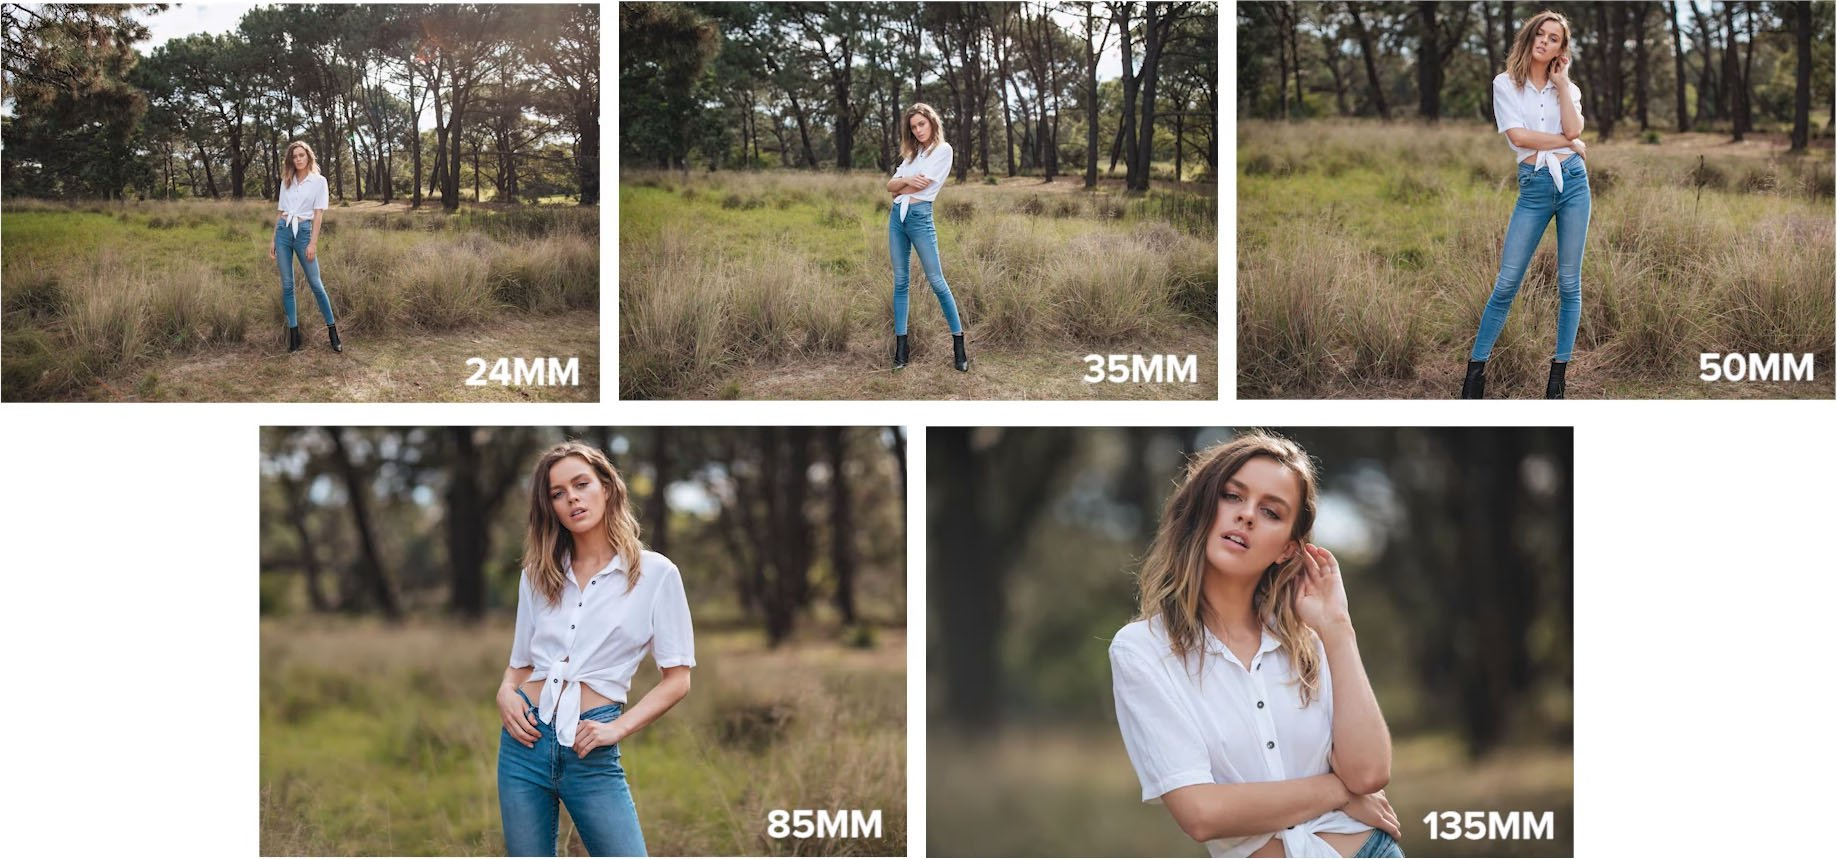 Prime Lens Portrait Shootout: 24mm vs 35mm vs 50mm vs 85mm